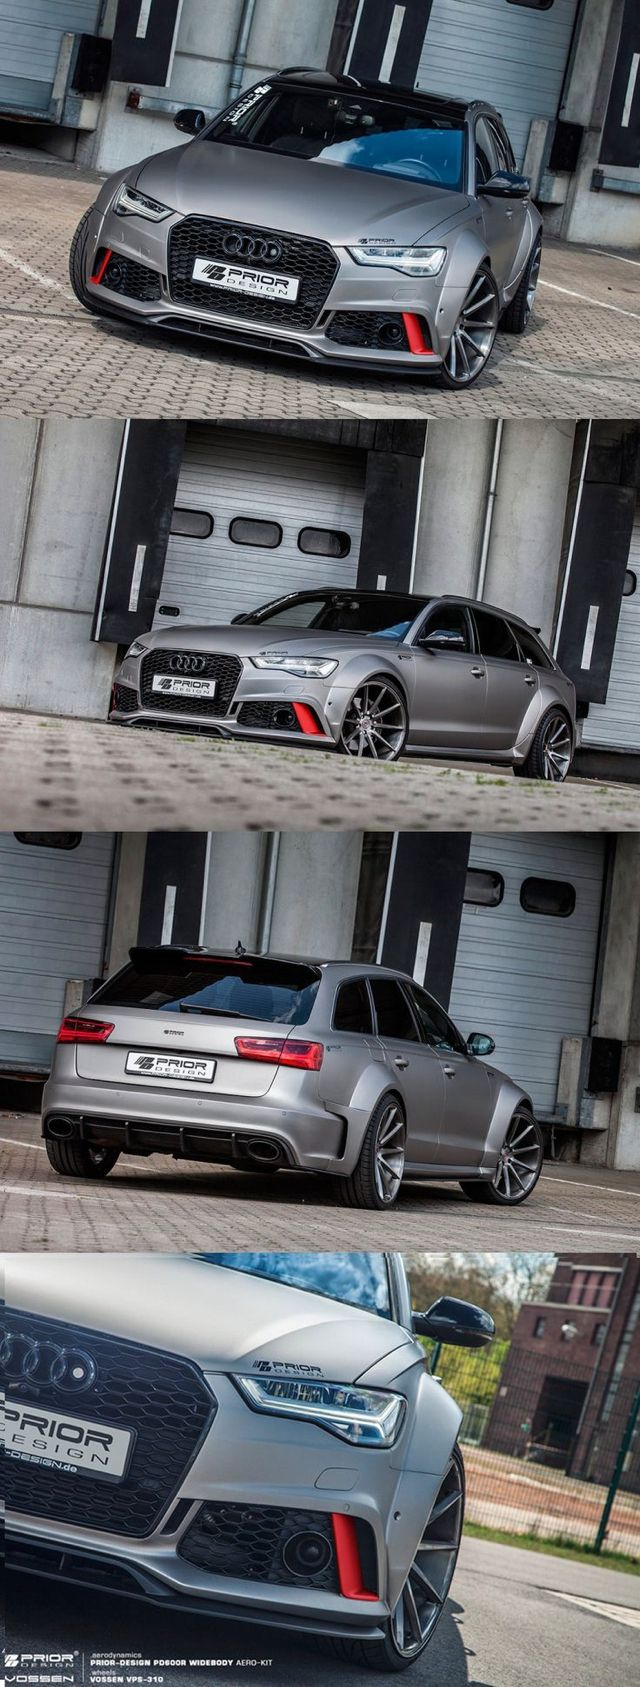 Audi sedans & coupes collections 0069 ...Read More...